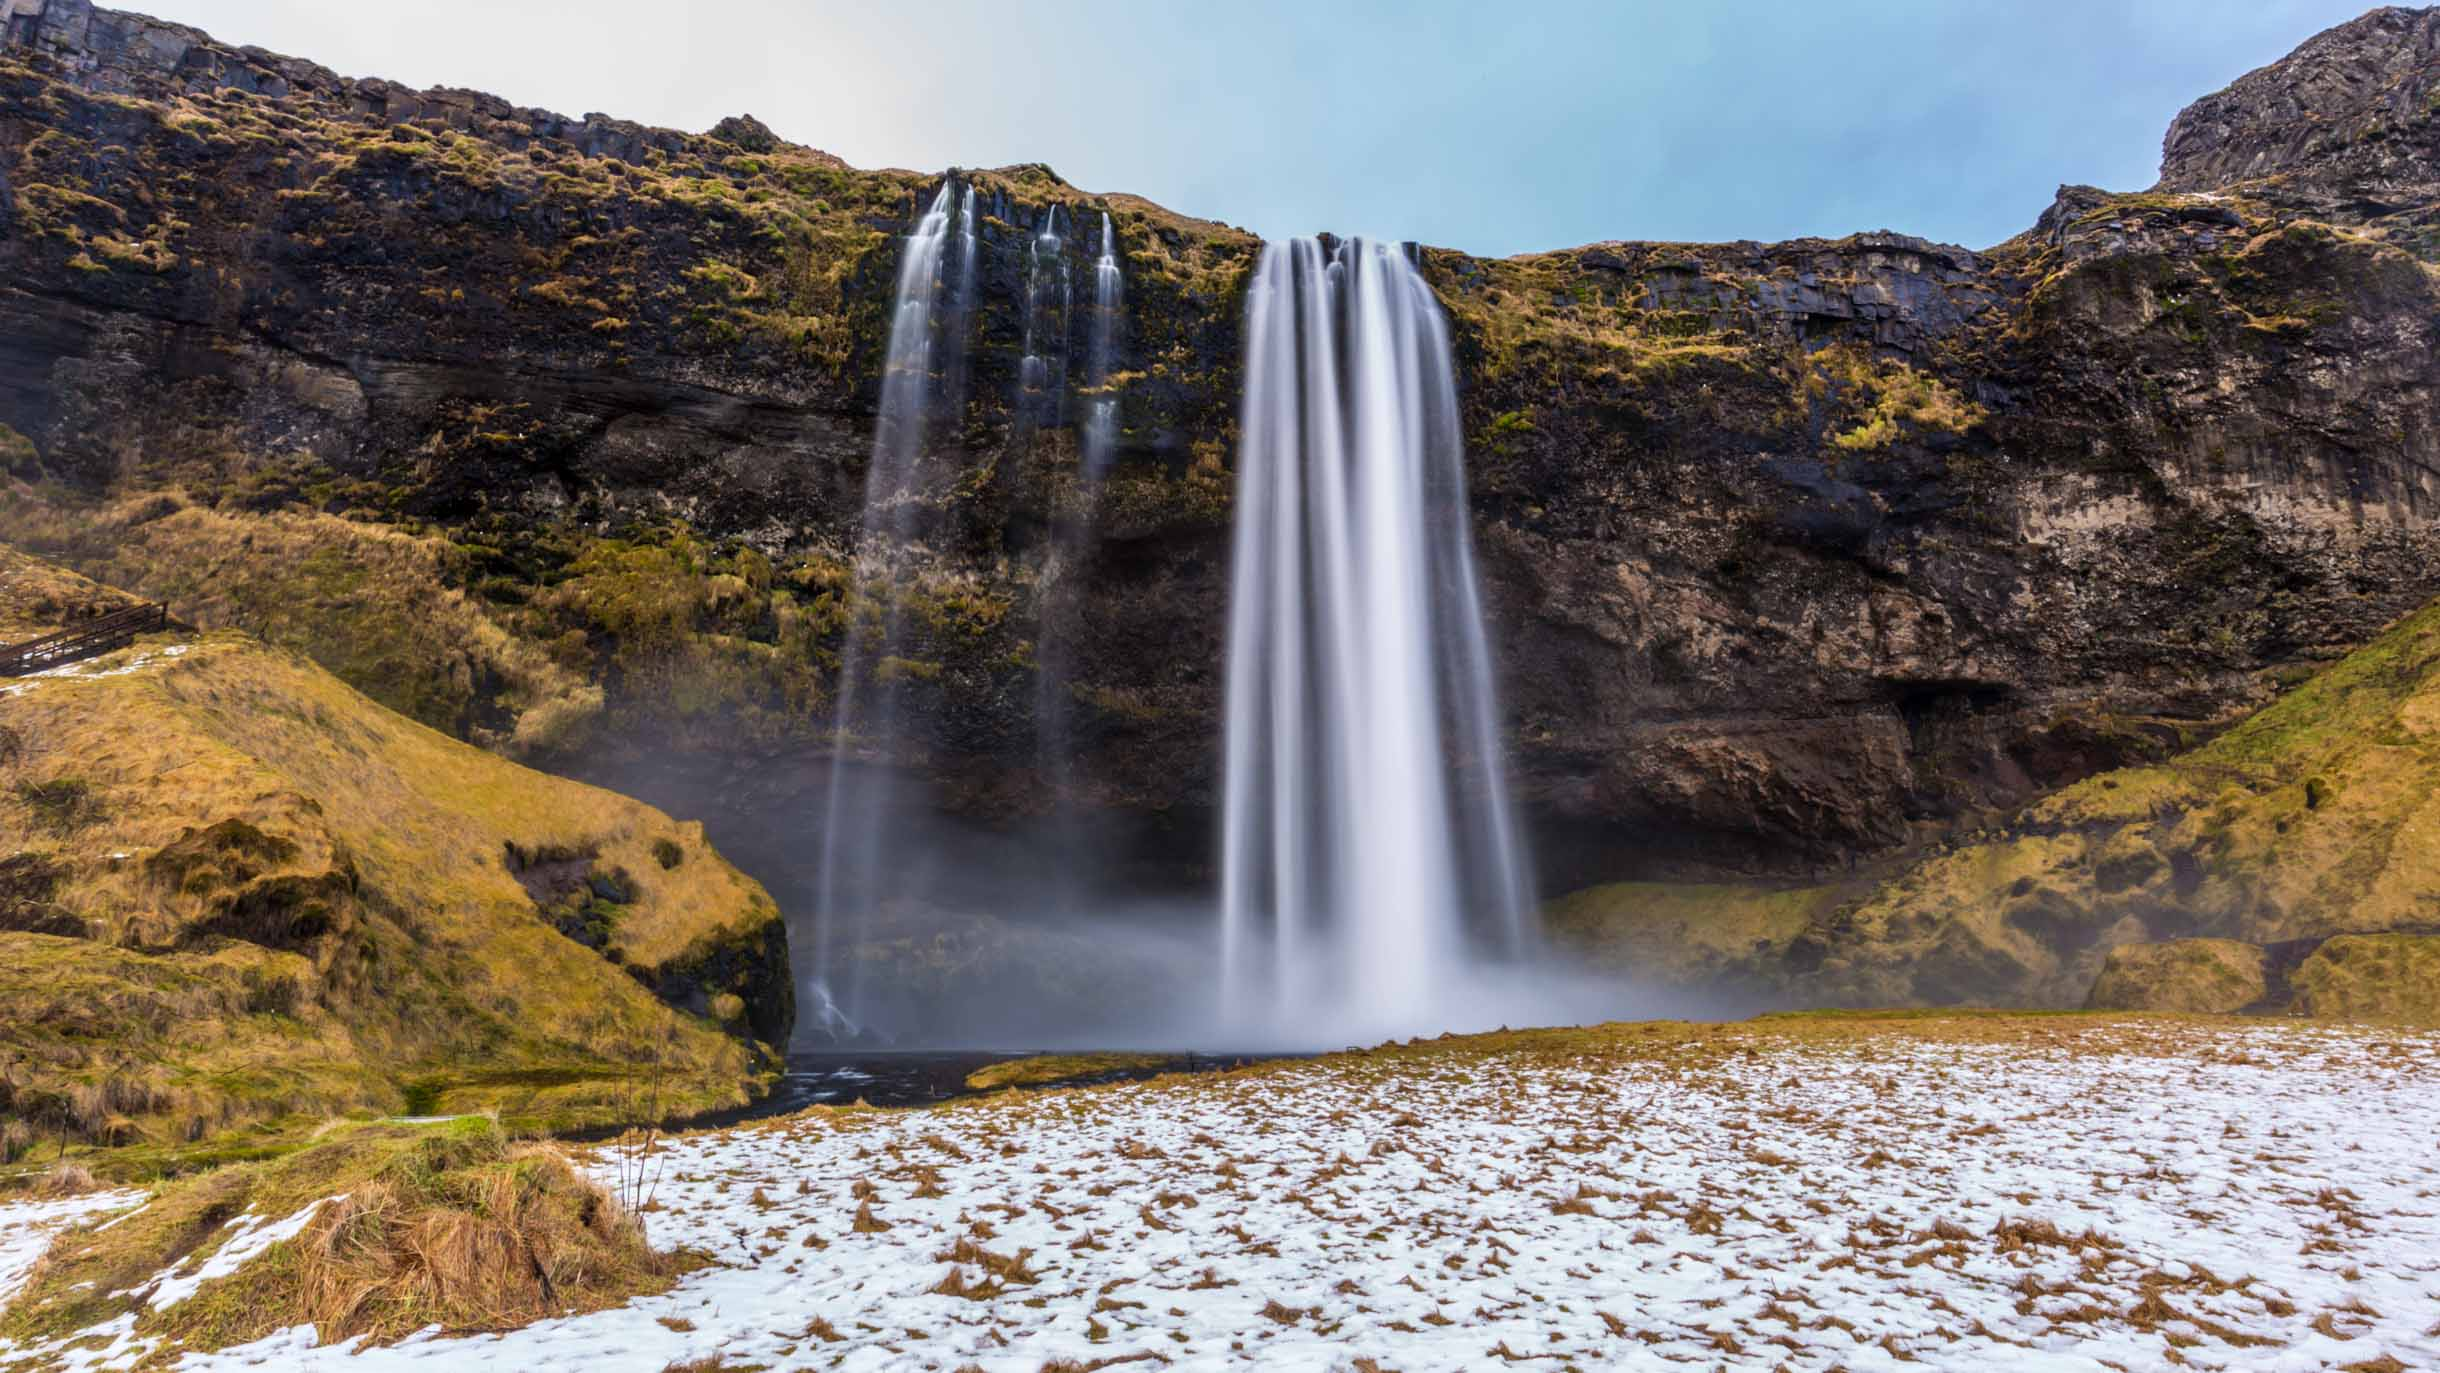 pictures of the seljalandsfoss waterfall iceland while we were visiting the Southern Iceland Waterfalls